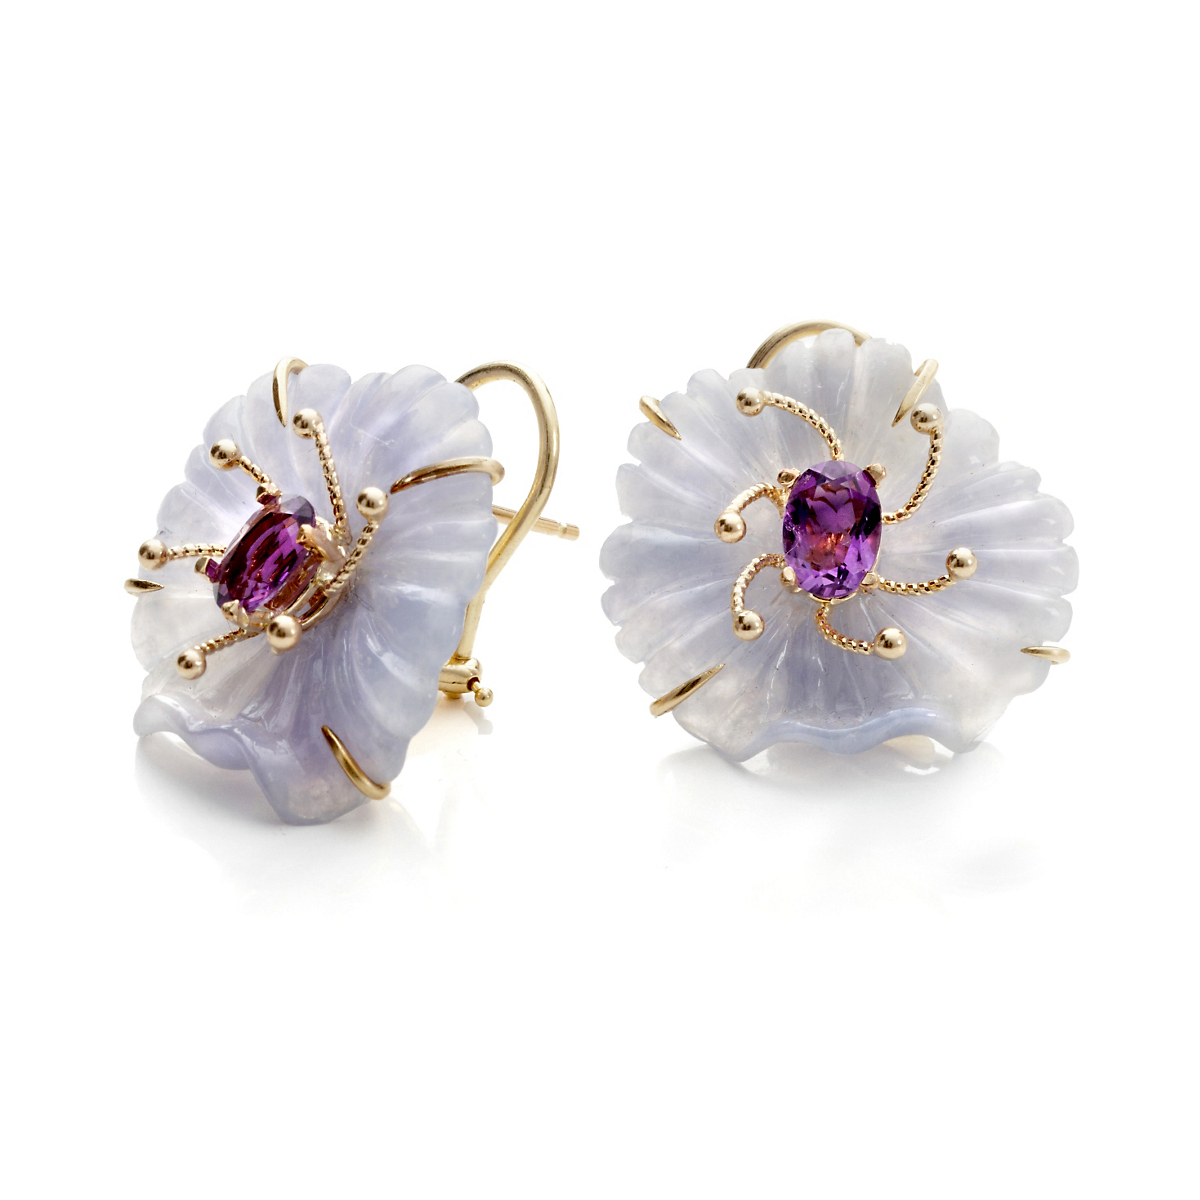 Russell Trusso Lavender Jade & Amethyst Flower Earrings